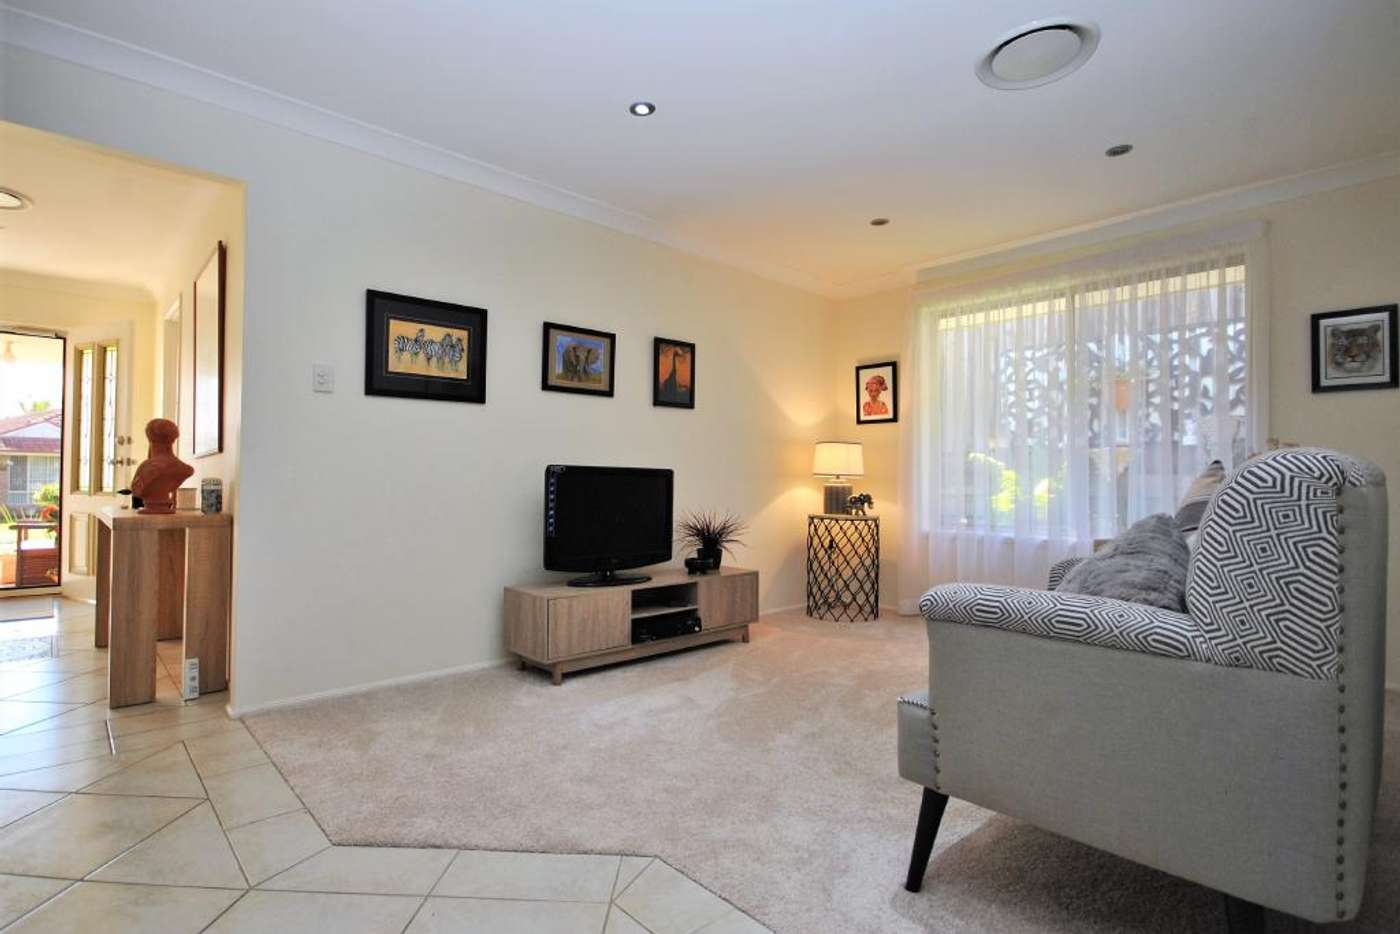 Sixth view of Homely house listing, 3 Tradewinds Avenue, Summerland Point NSW 2259